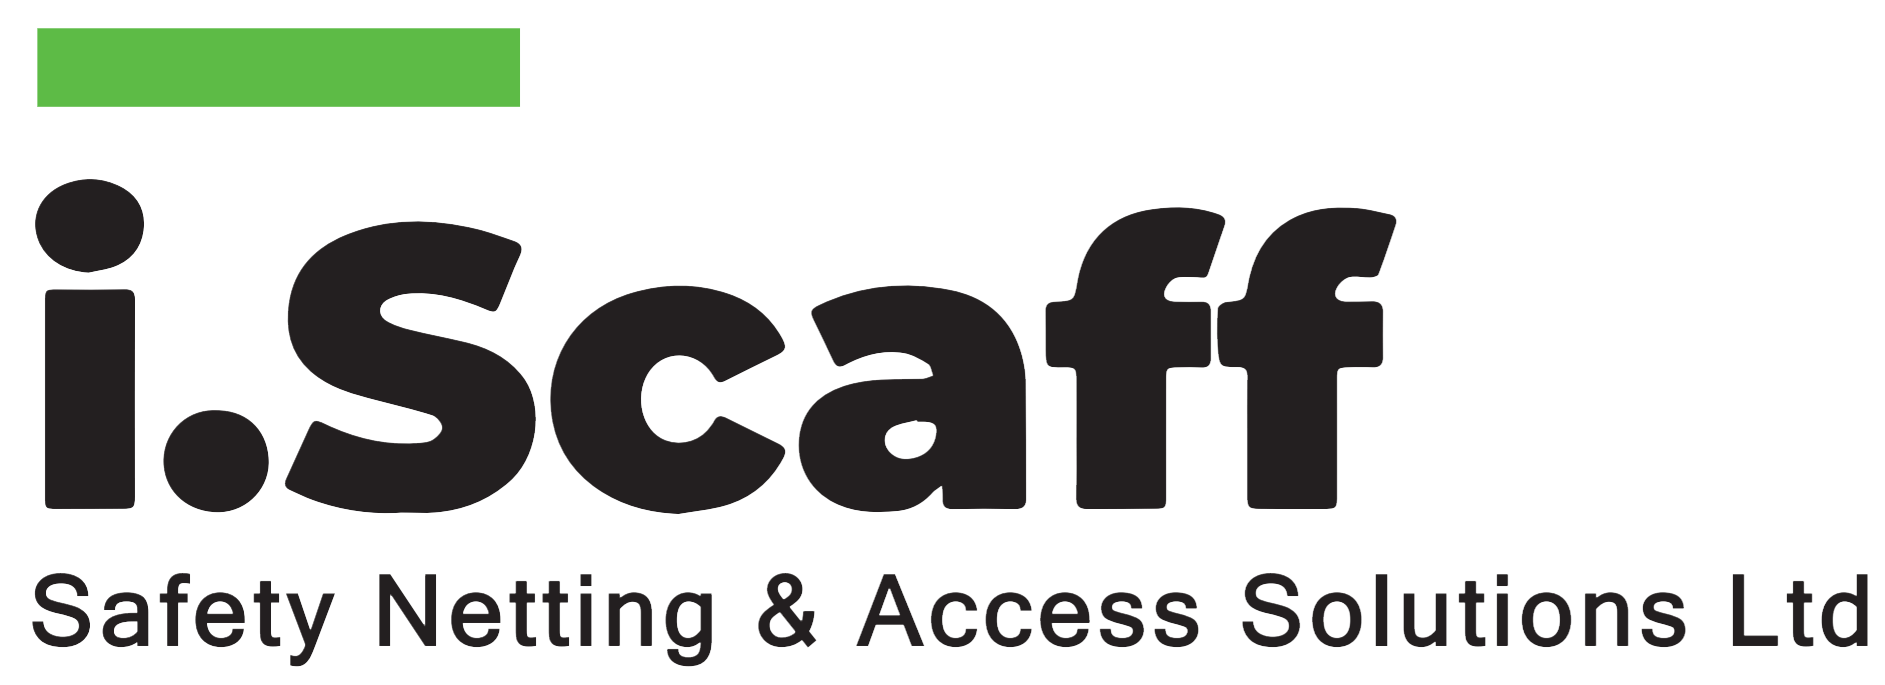 iScaff Safety Netting & Access Solutions Ltd